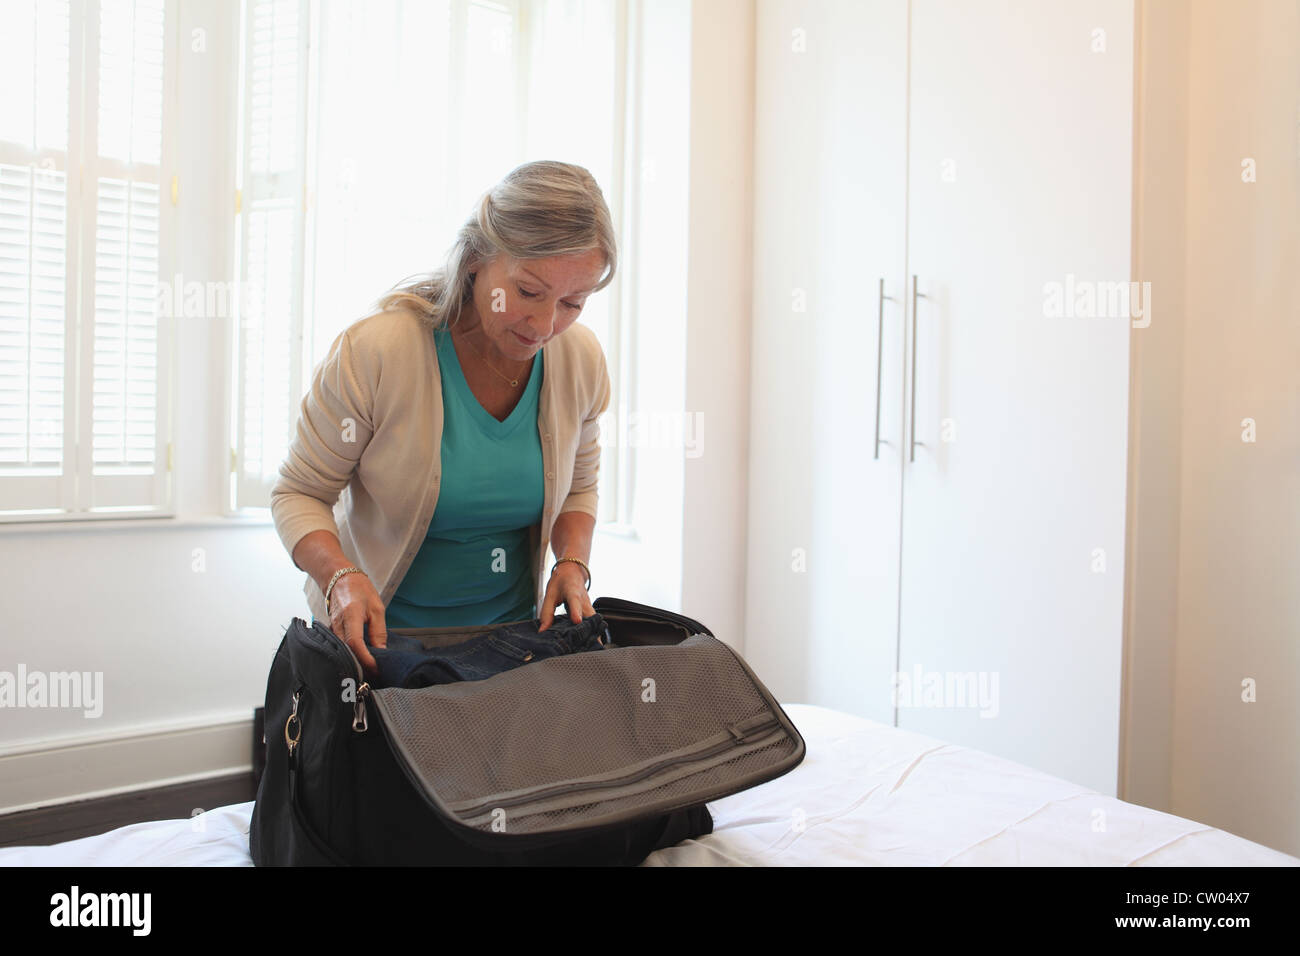 older-woman-packing-a-suitcase-CW04X7.jp